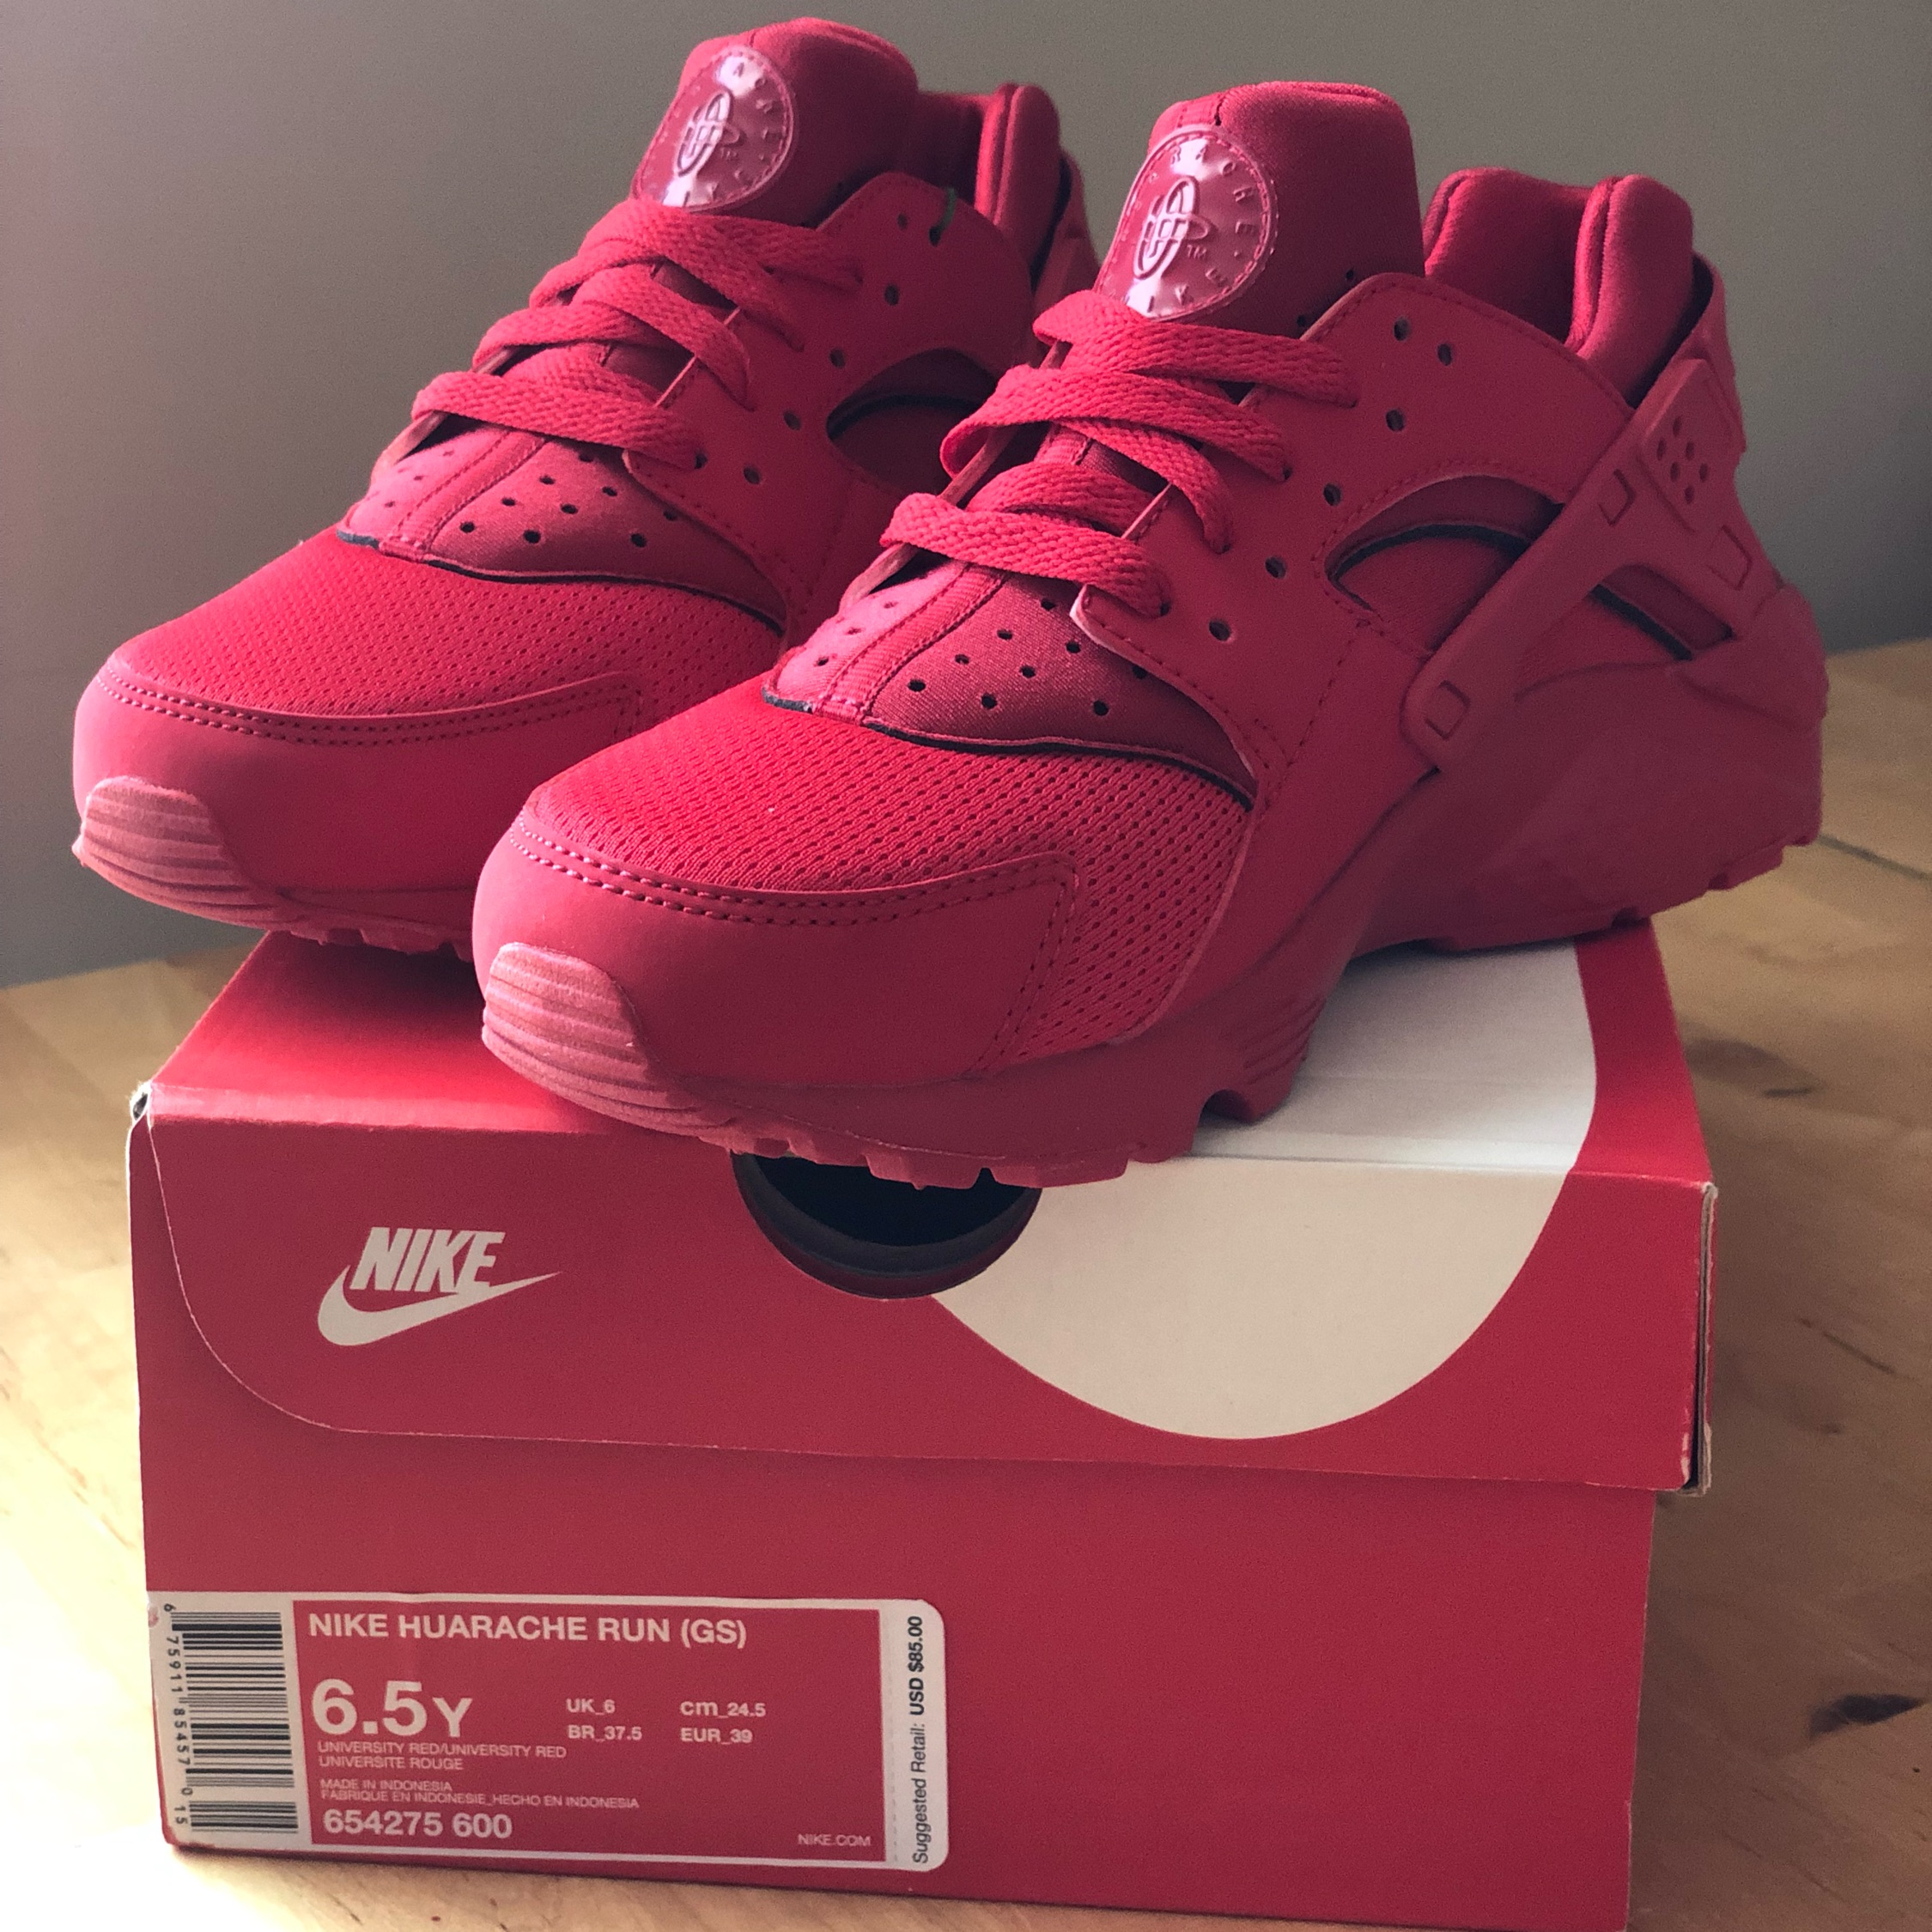 Nike Huaraches University Red (Gs) 6.5 Y